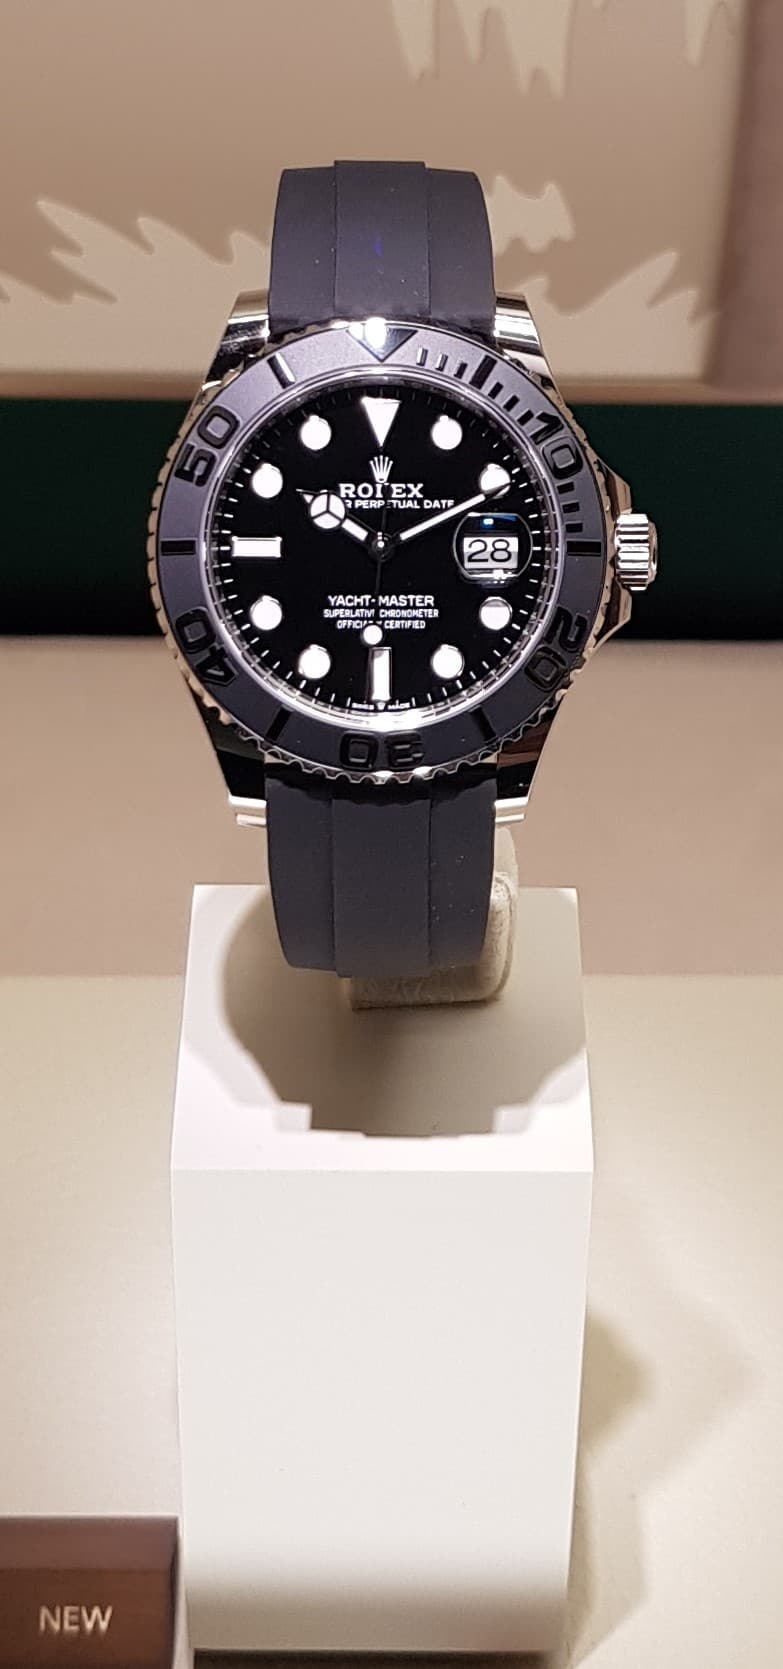 YACHTMASTER 42